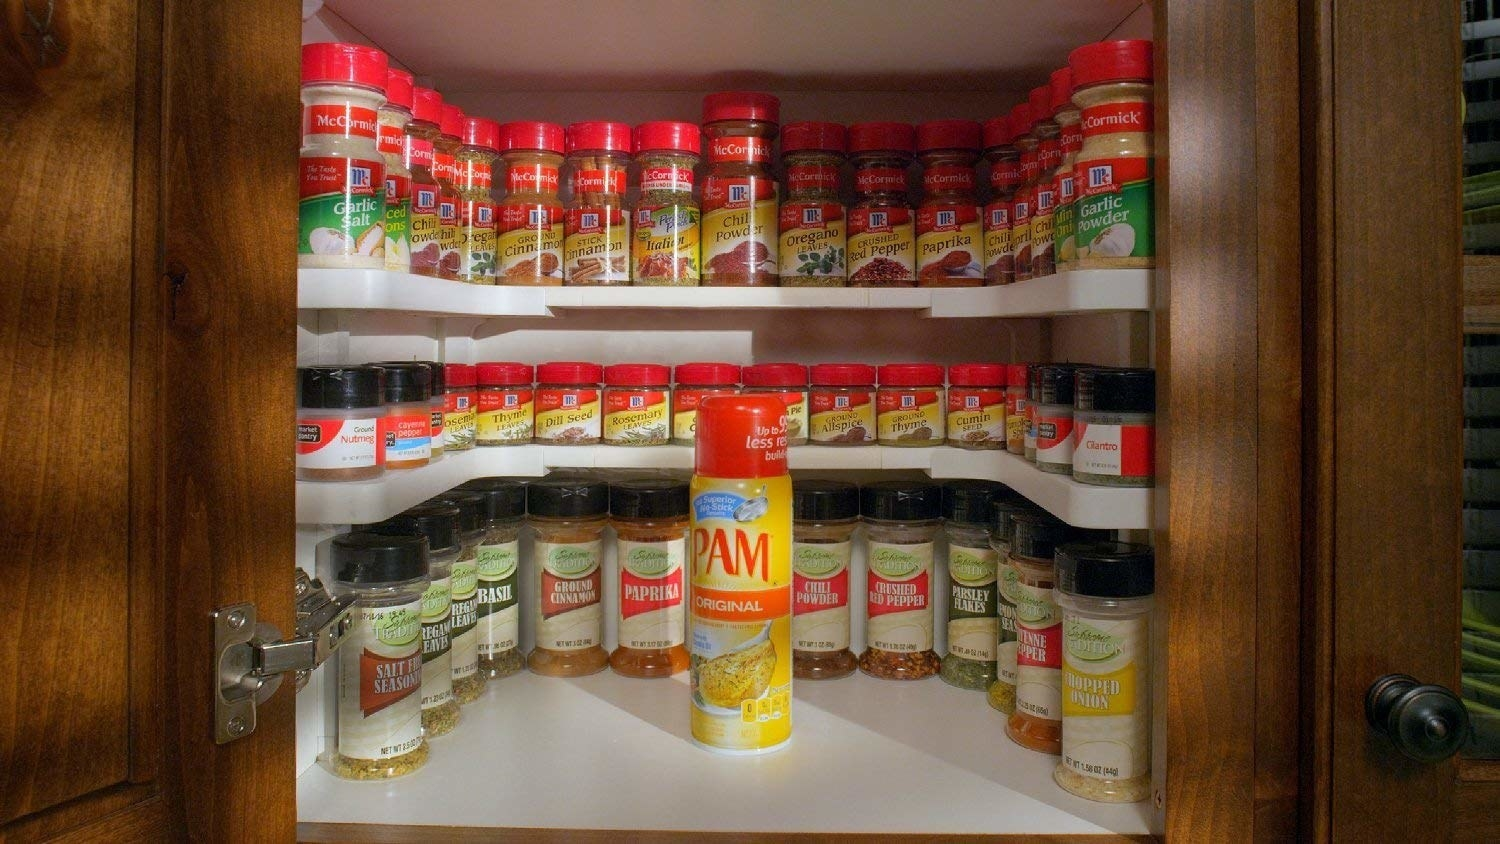 The multi-level shelf filled with spices